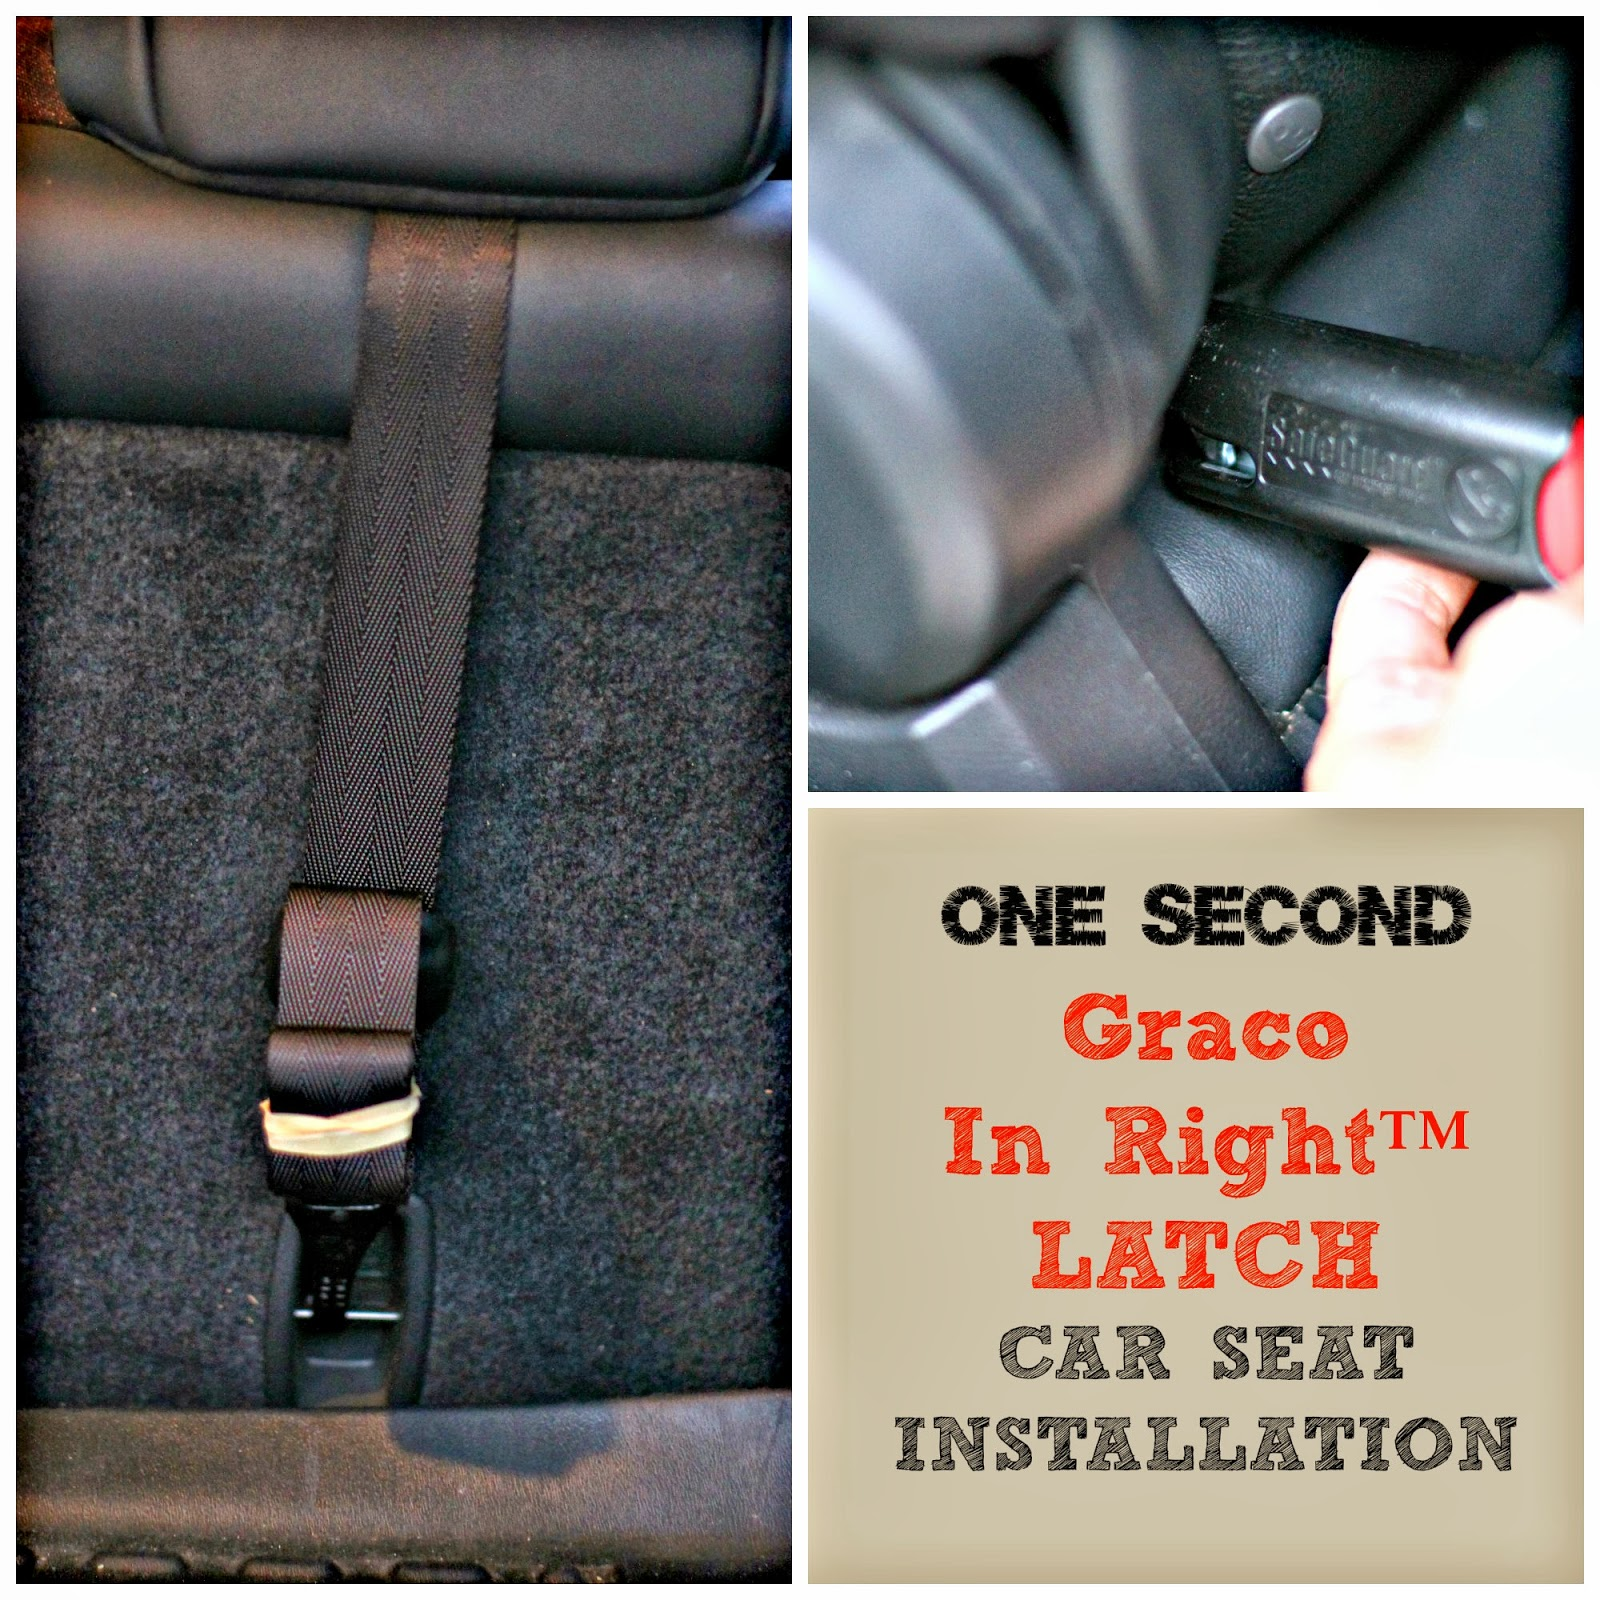 Car Seat Latch Homepage